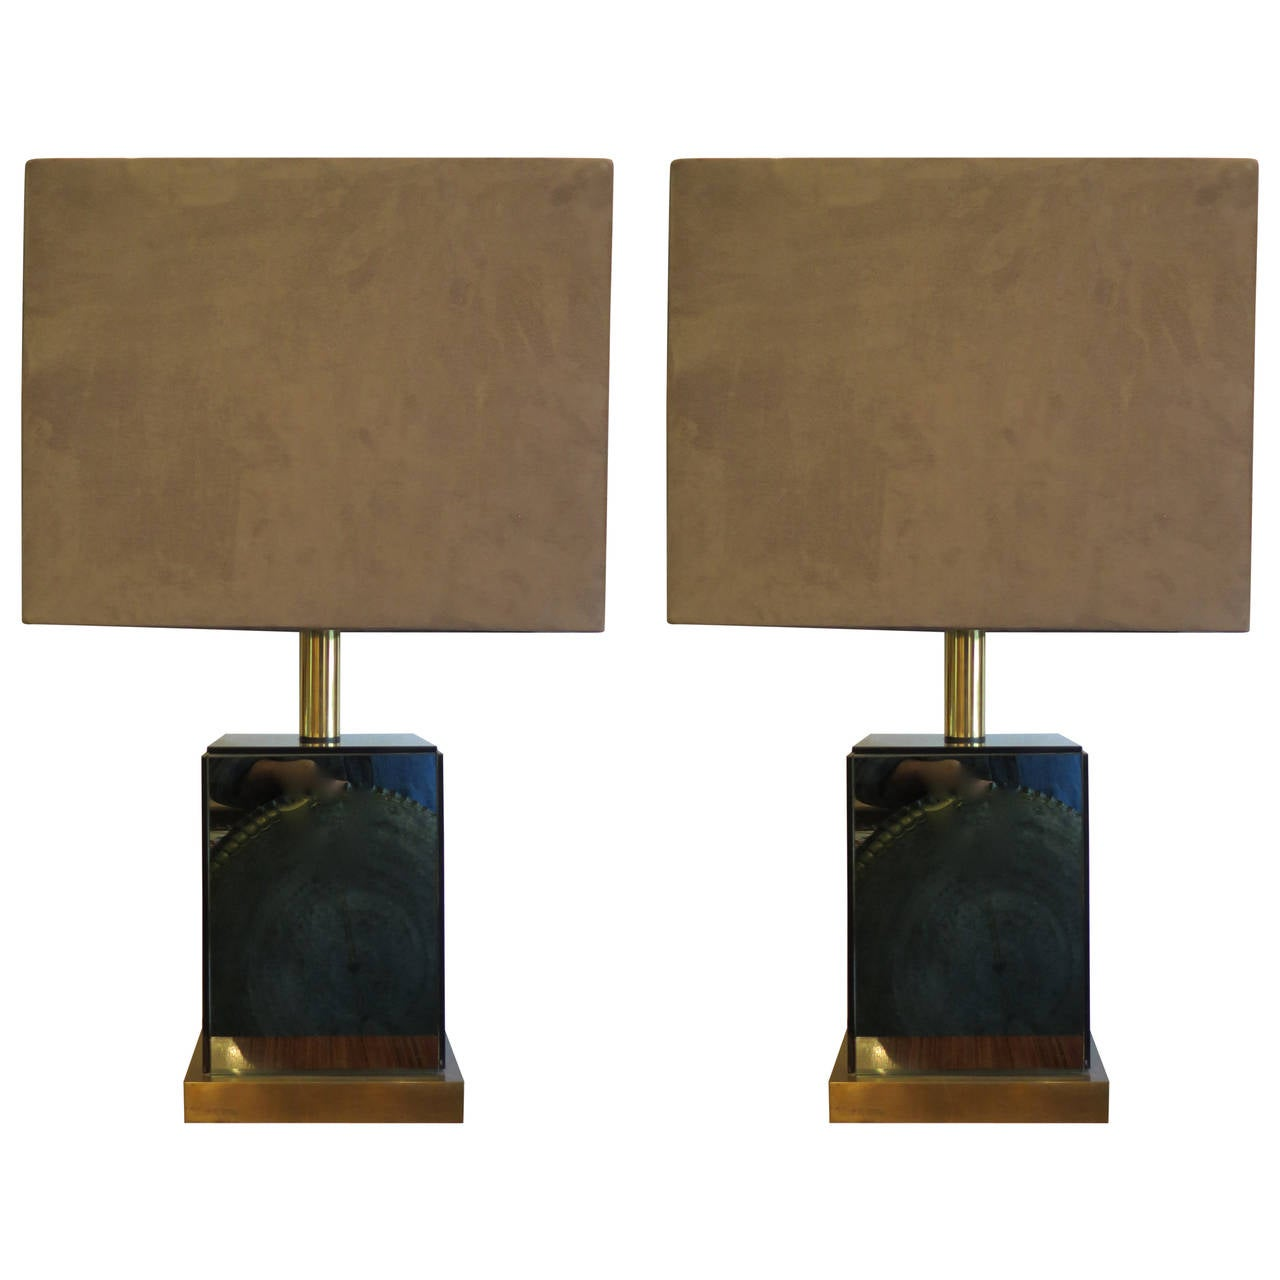 SATURDAY SALE Pair of Brass Modern Table Lamps by Italian